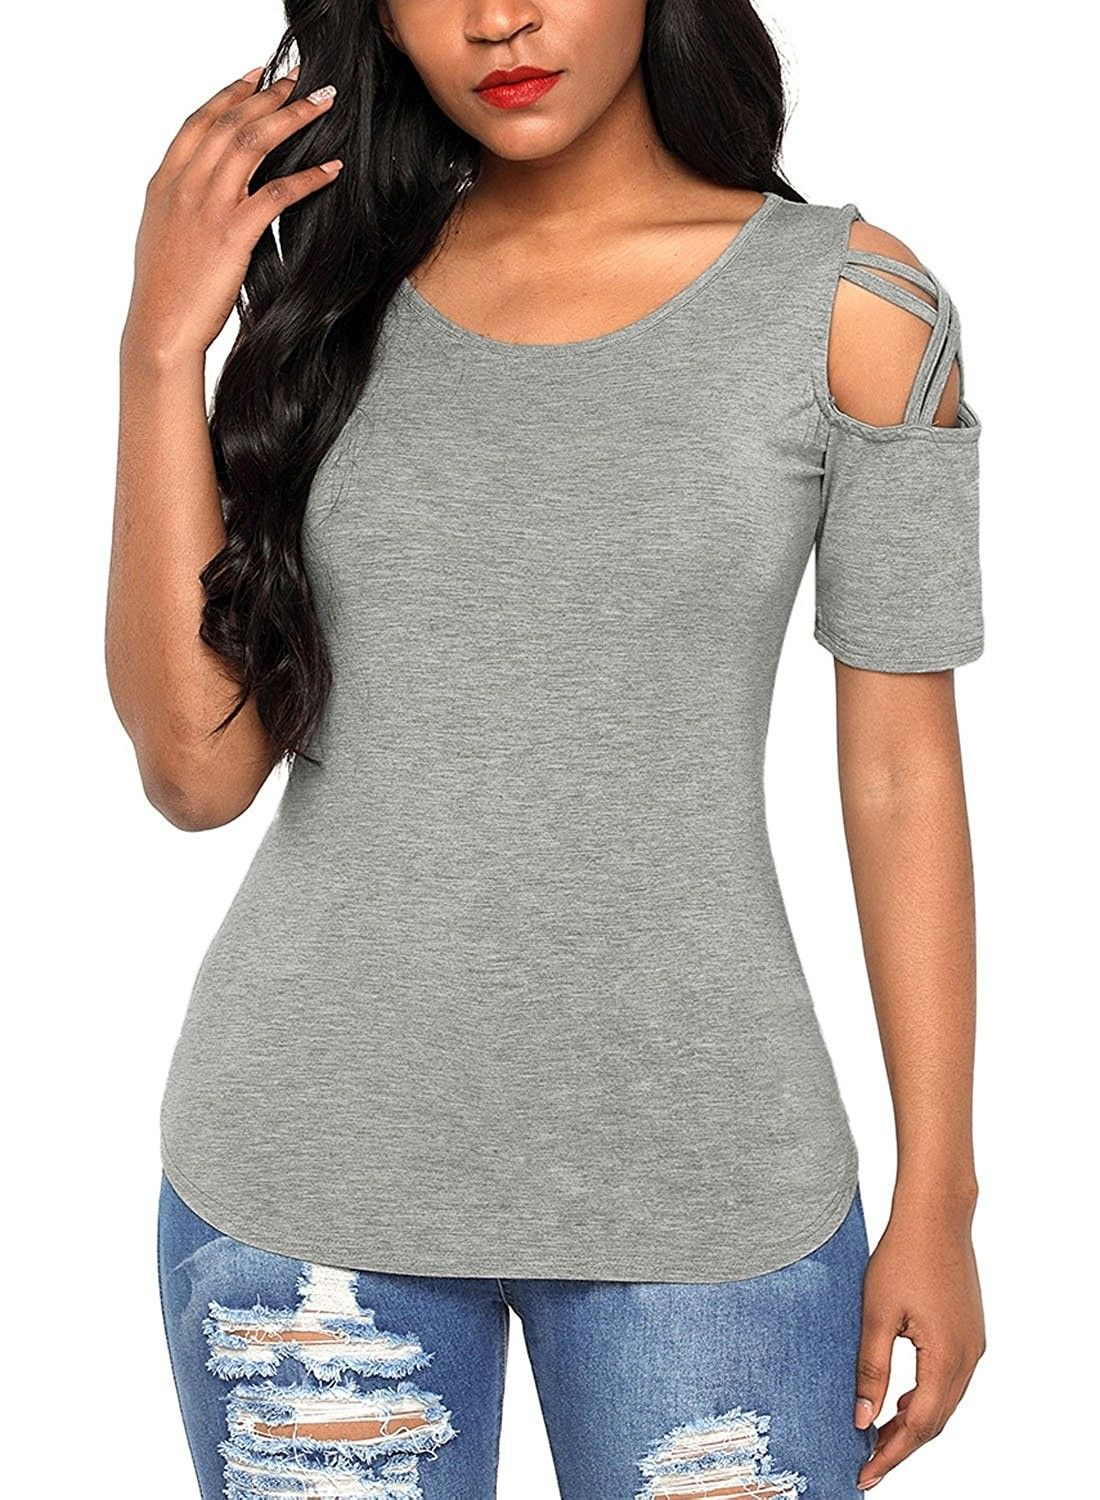 d46ac7d83346a Womens Casual Loose Cold Shoulder Tops and Blouses Basic T Shirts ...